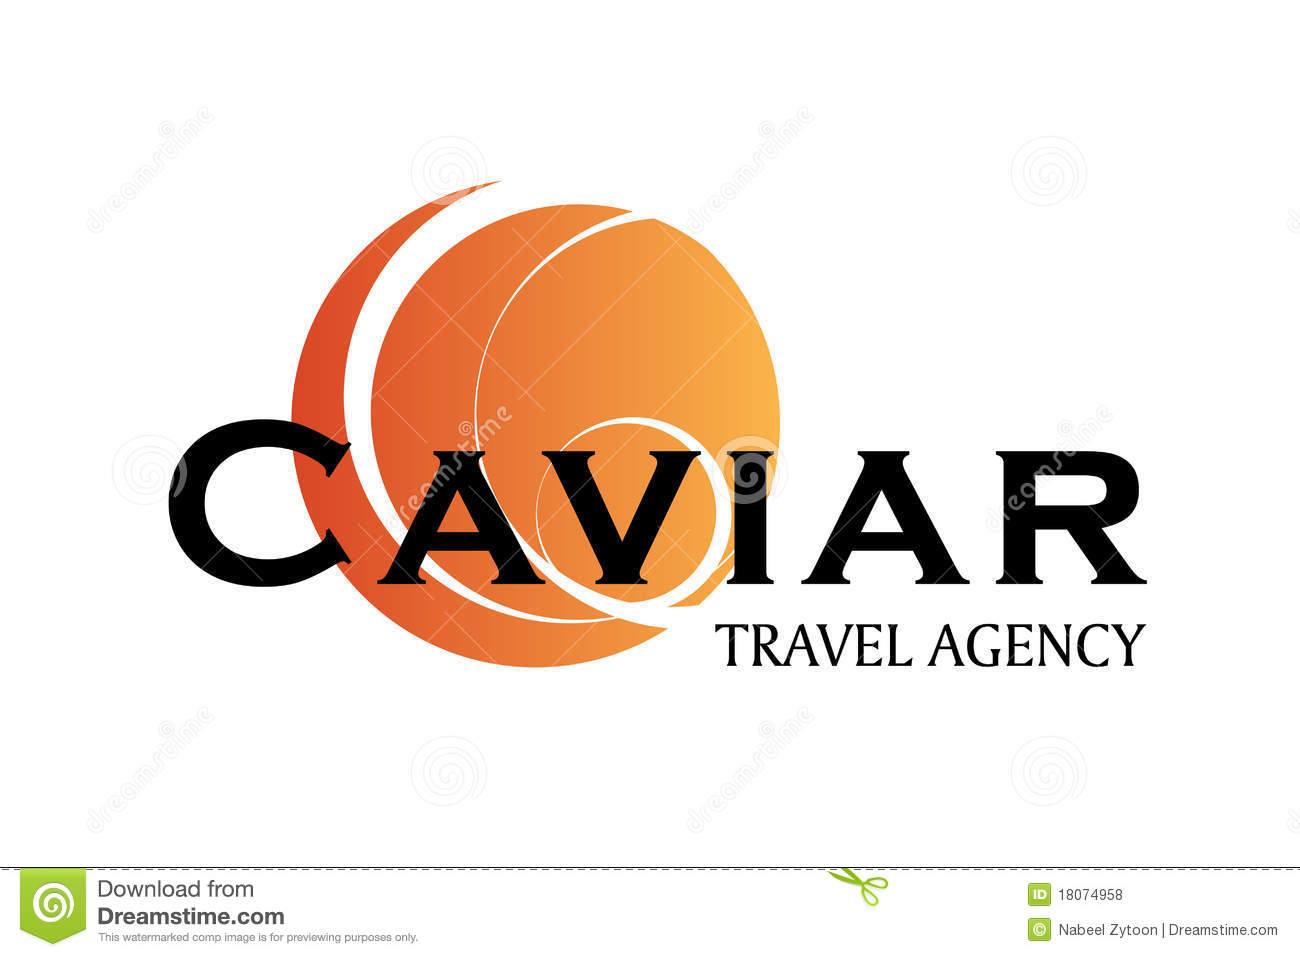 Travel agency logo design royalty free stock photos for Design agency